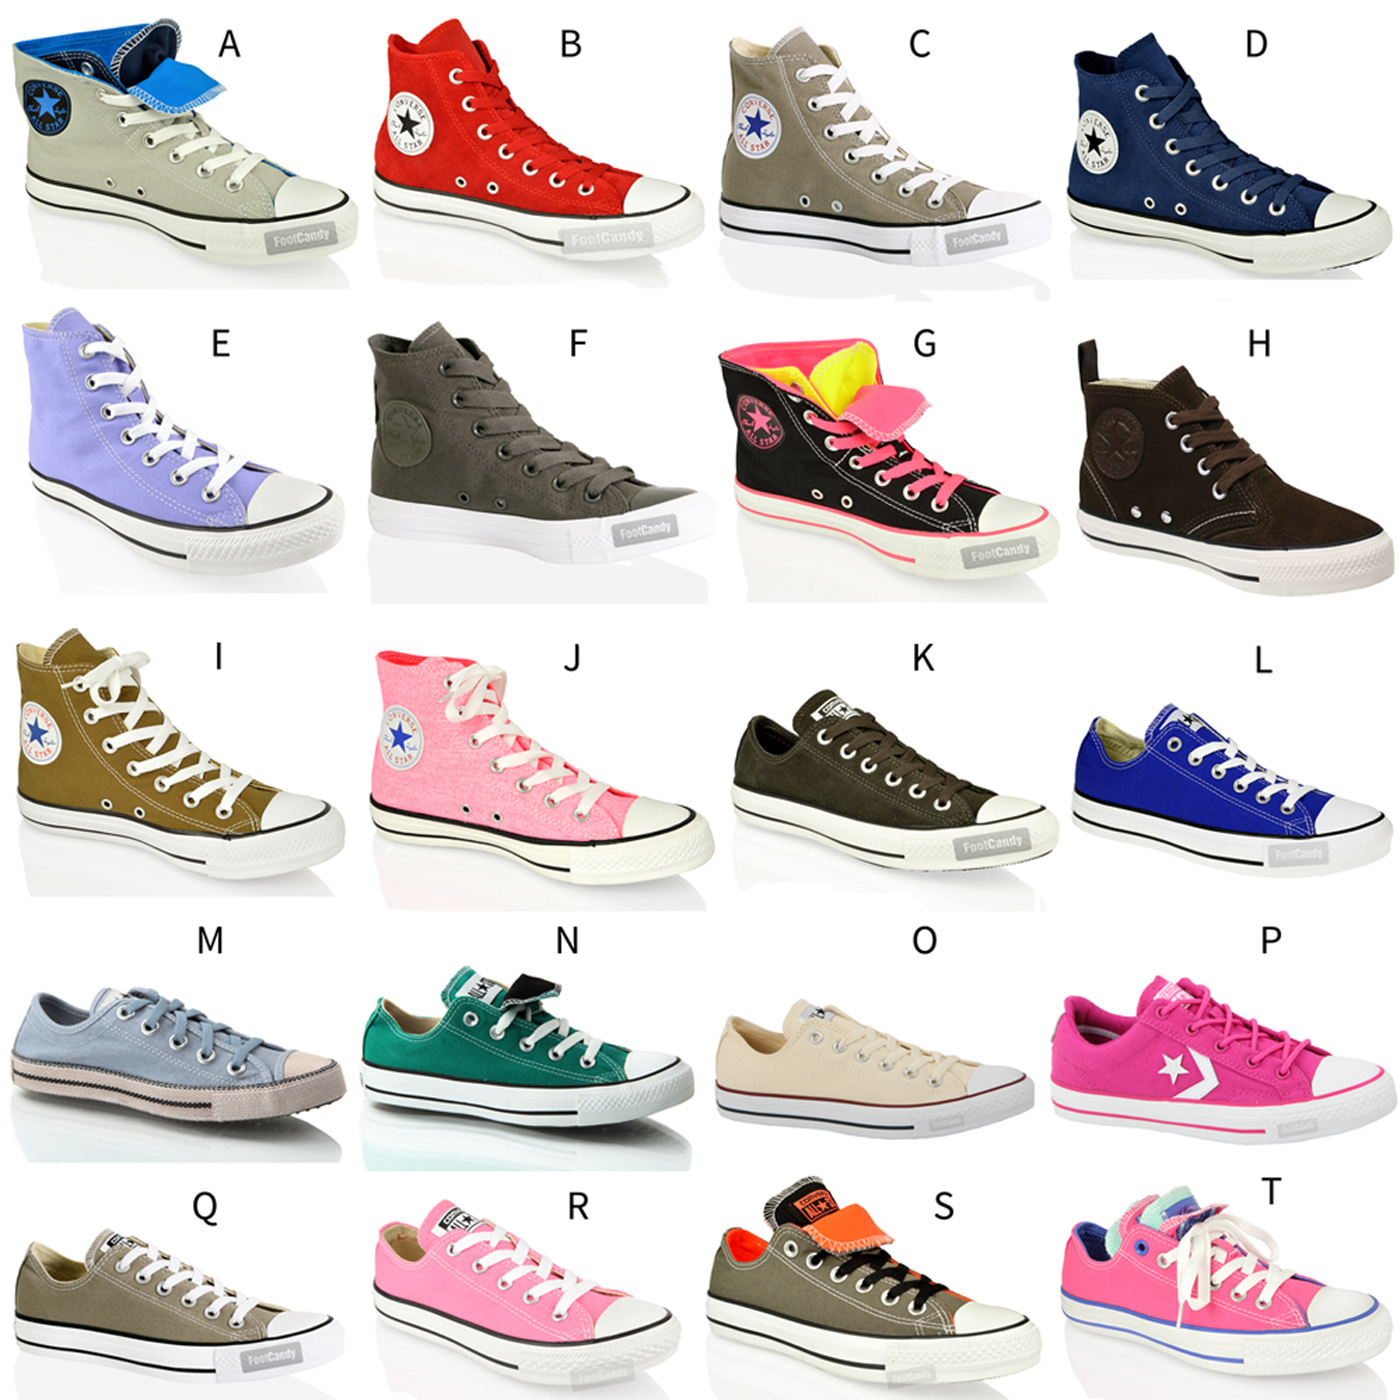 UNISEX CONVERSE ALL STAR CT HI LO TOP CANVAS LEATHER TRAINERS ...